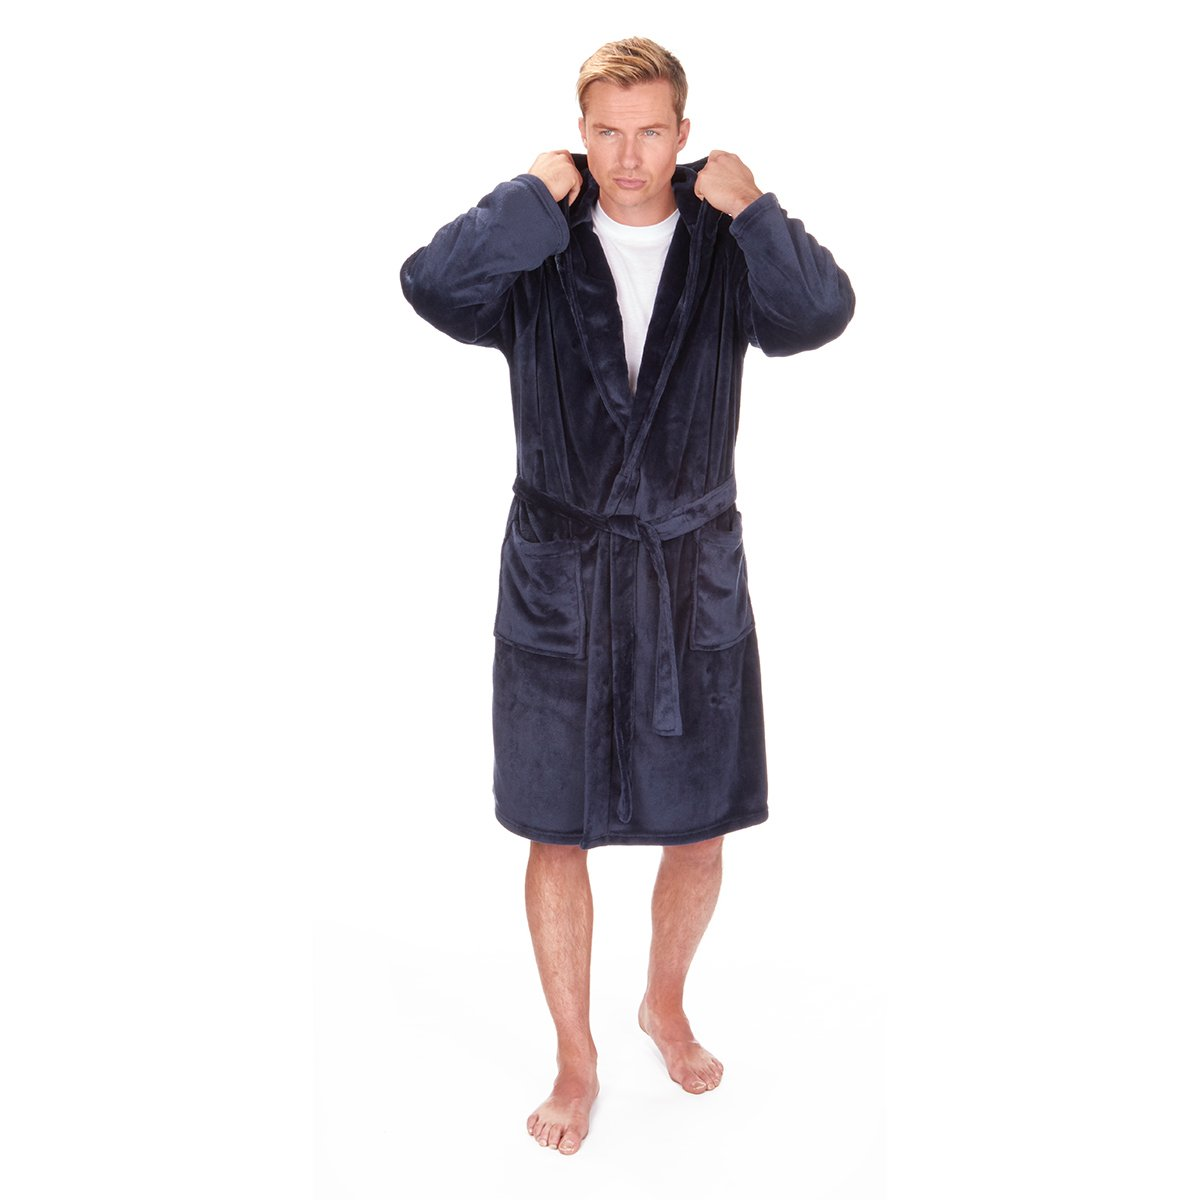 Big & Tall Men\'s Fleece Hooded Robe - Winter Dressing Gown - Sizes ...